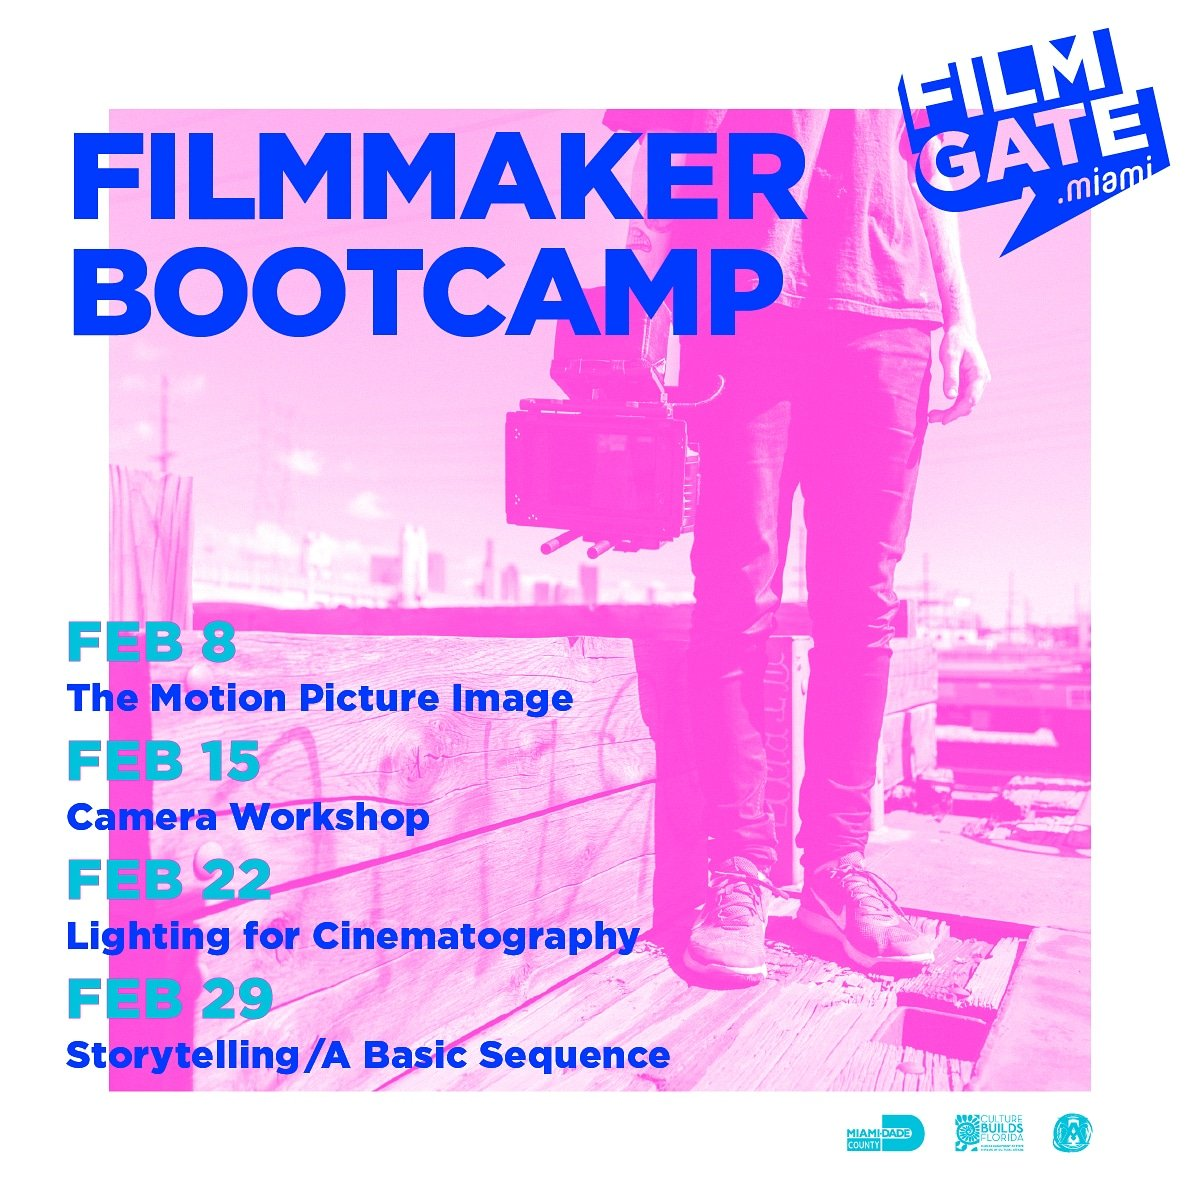 Filmmaker Bootcamp - Lighting for Cinematography workshop this Saturday - Lighting or Cinematography alone doesn't make a quality image. Let's show you how it's done. #miamievent #thingstodo Ticket link http://FilmGate.miami pic.twitter.com/dQsAAvAFxk – at Downtown Media Center